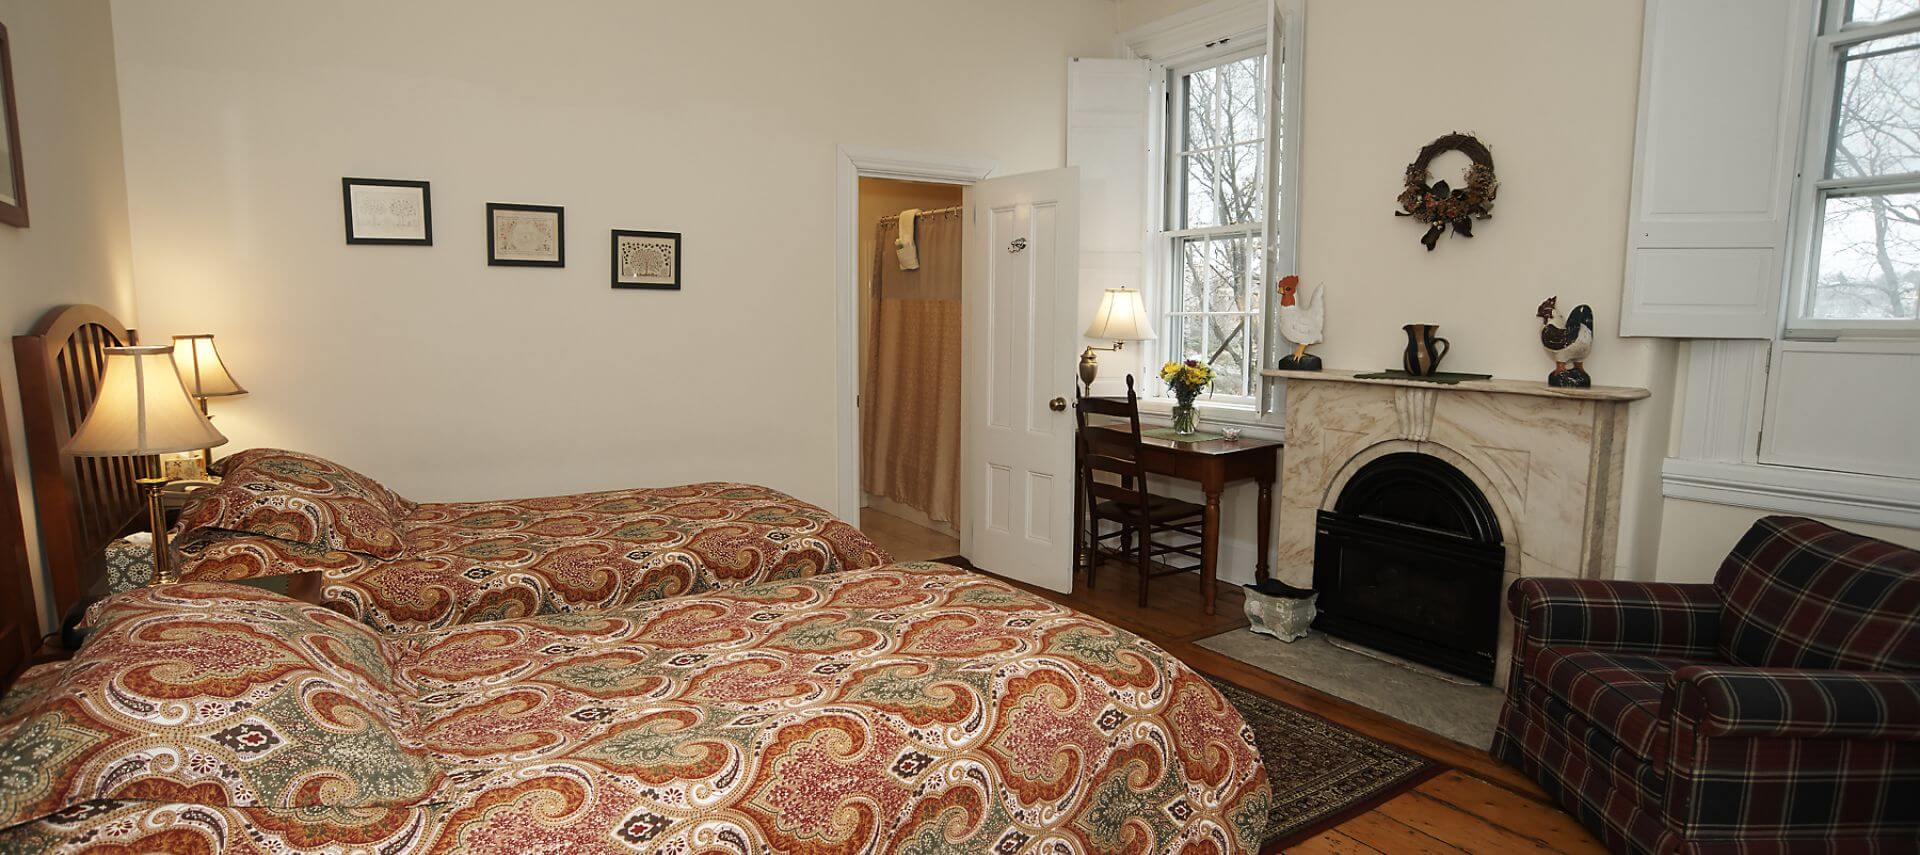 twin beds in a bedroom facing a fireplace, overstuffed chair and large windows.